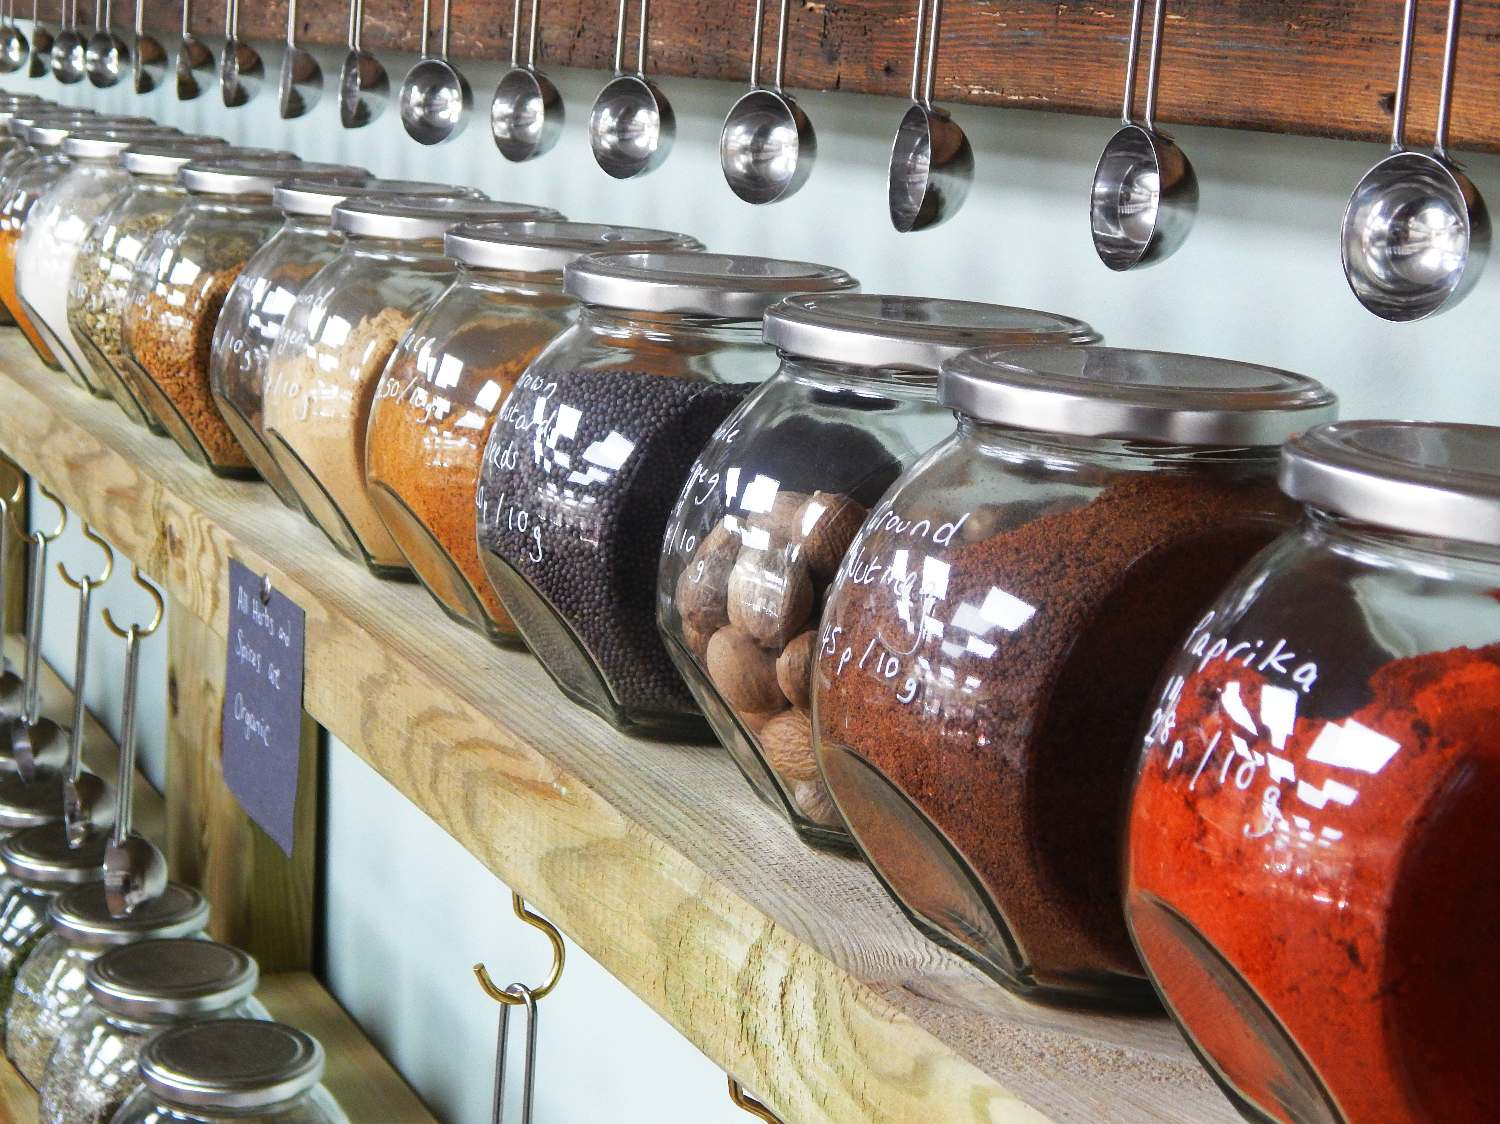 Shelves lined with large jars of spices and seeds